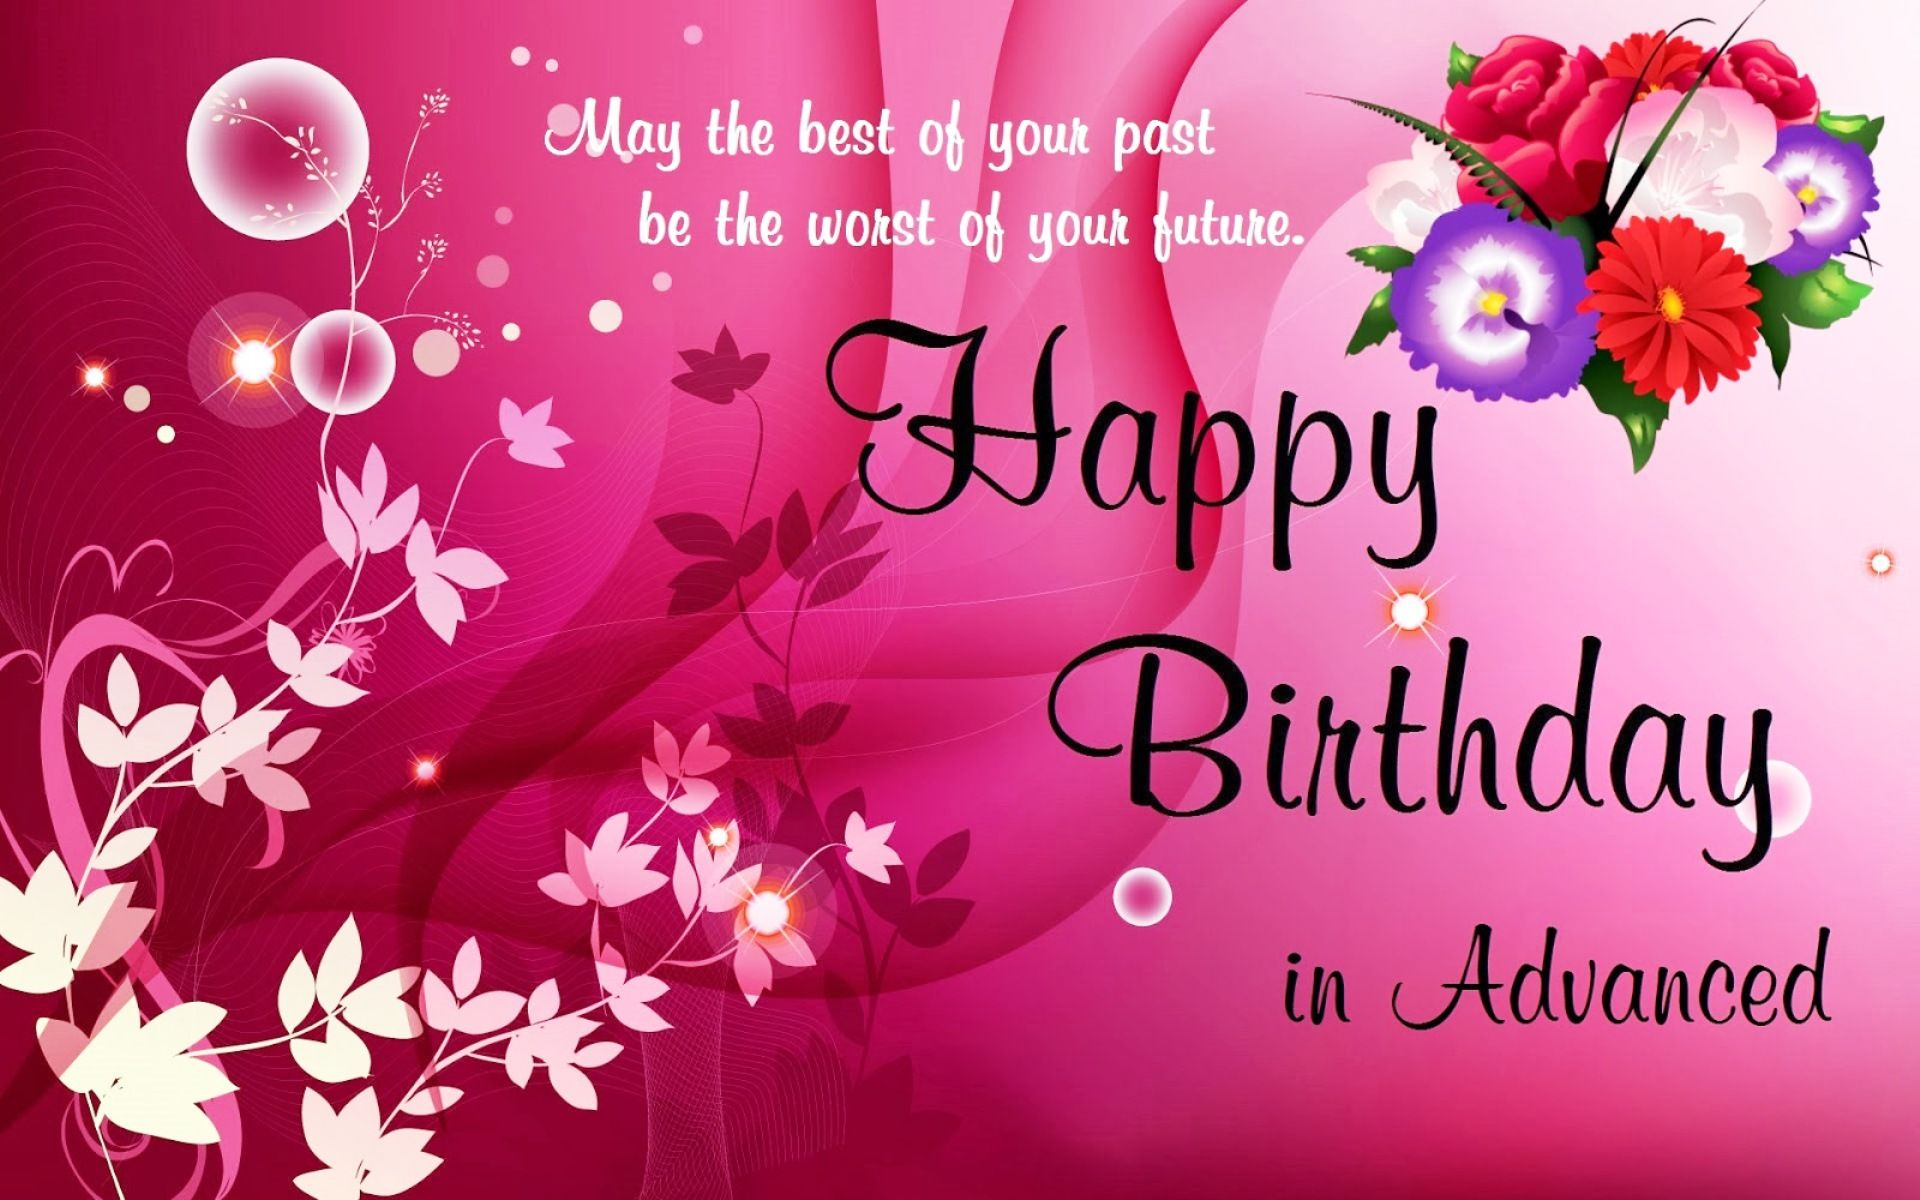 Happy Birthday Wishes Wallpapers - Get the Newest Collection of ...